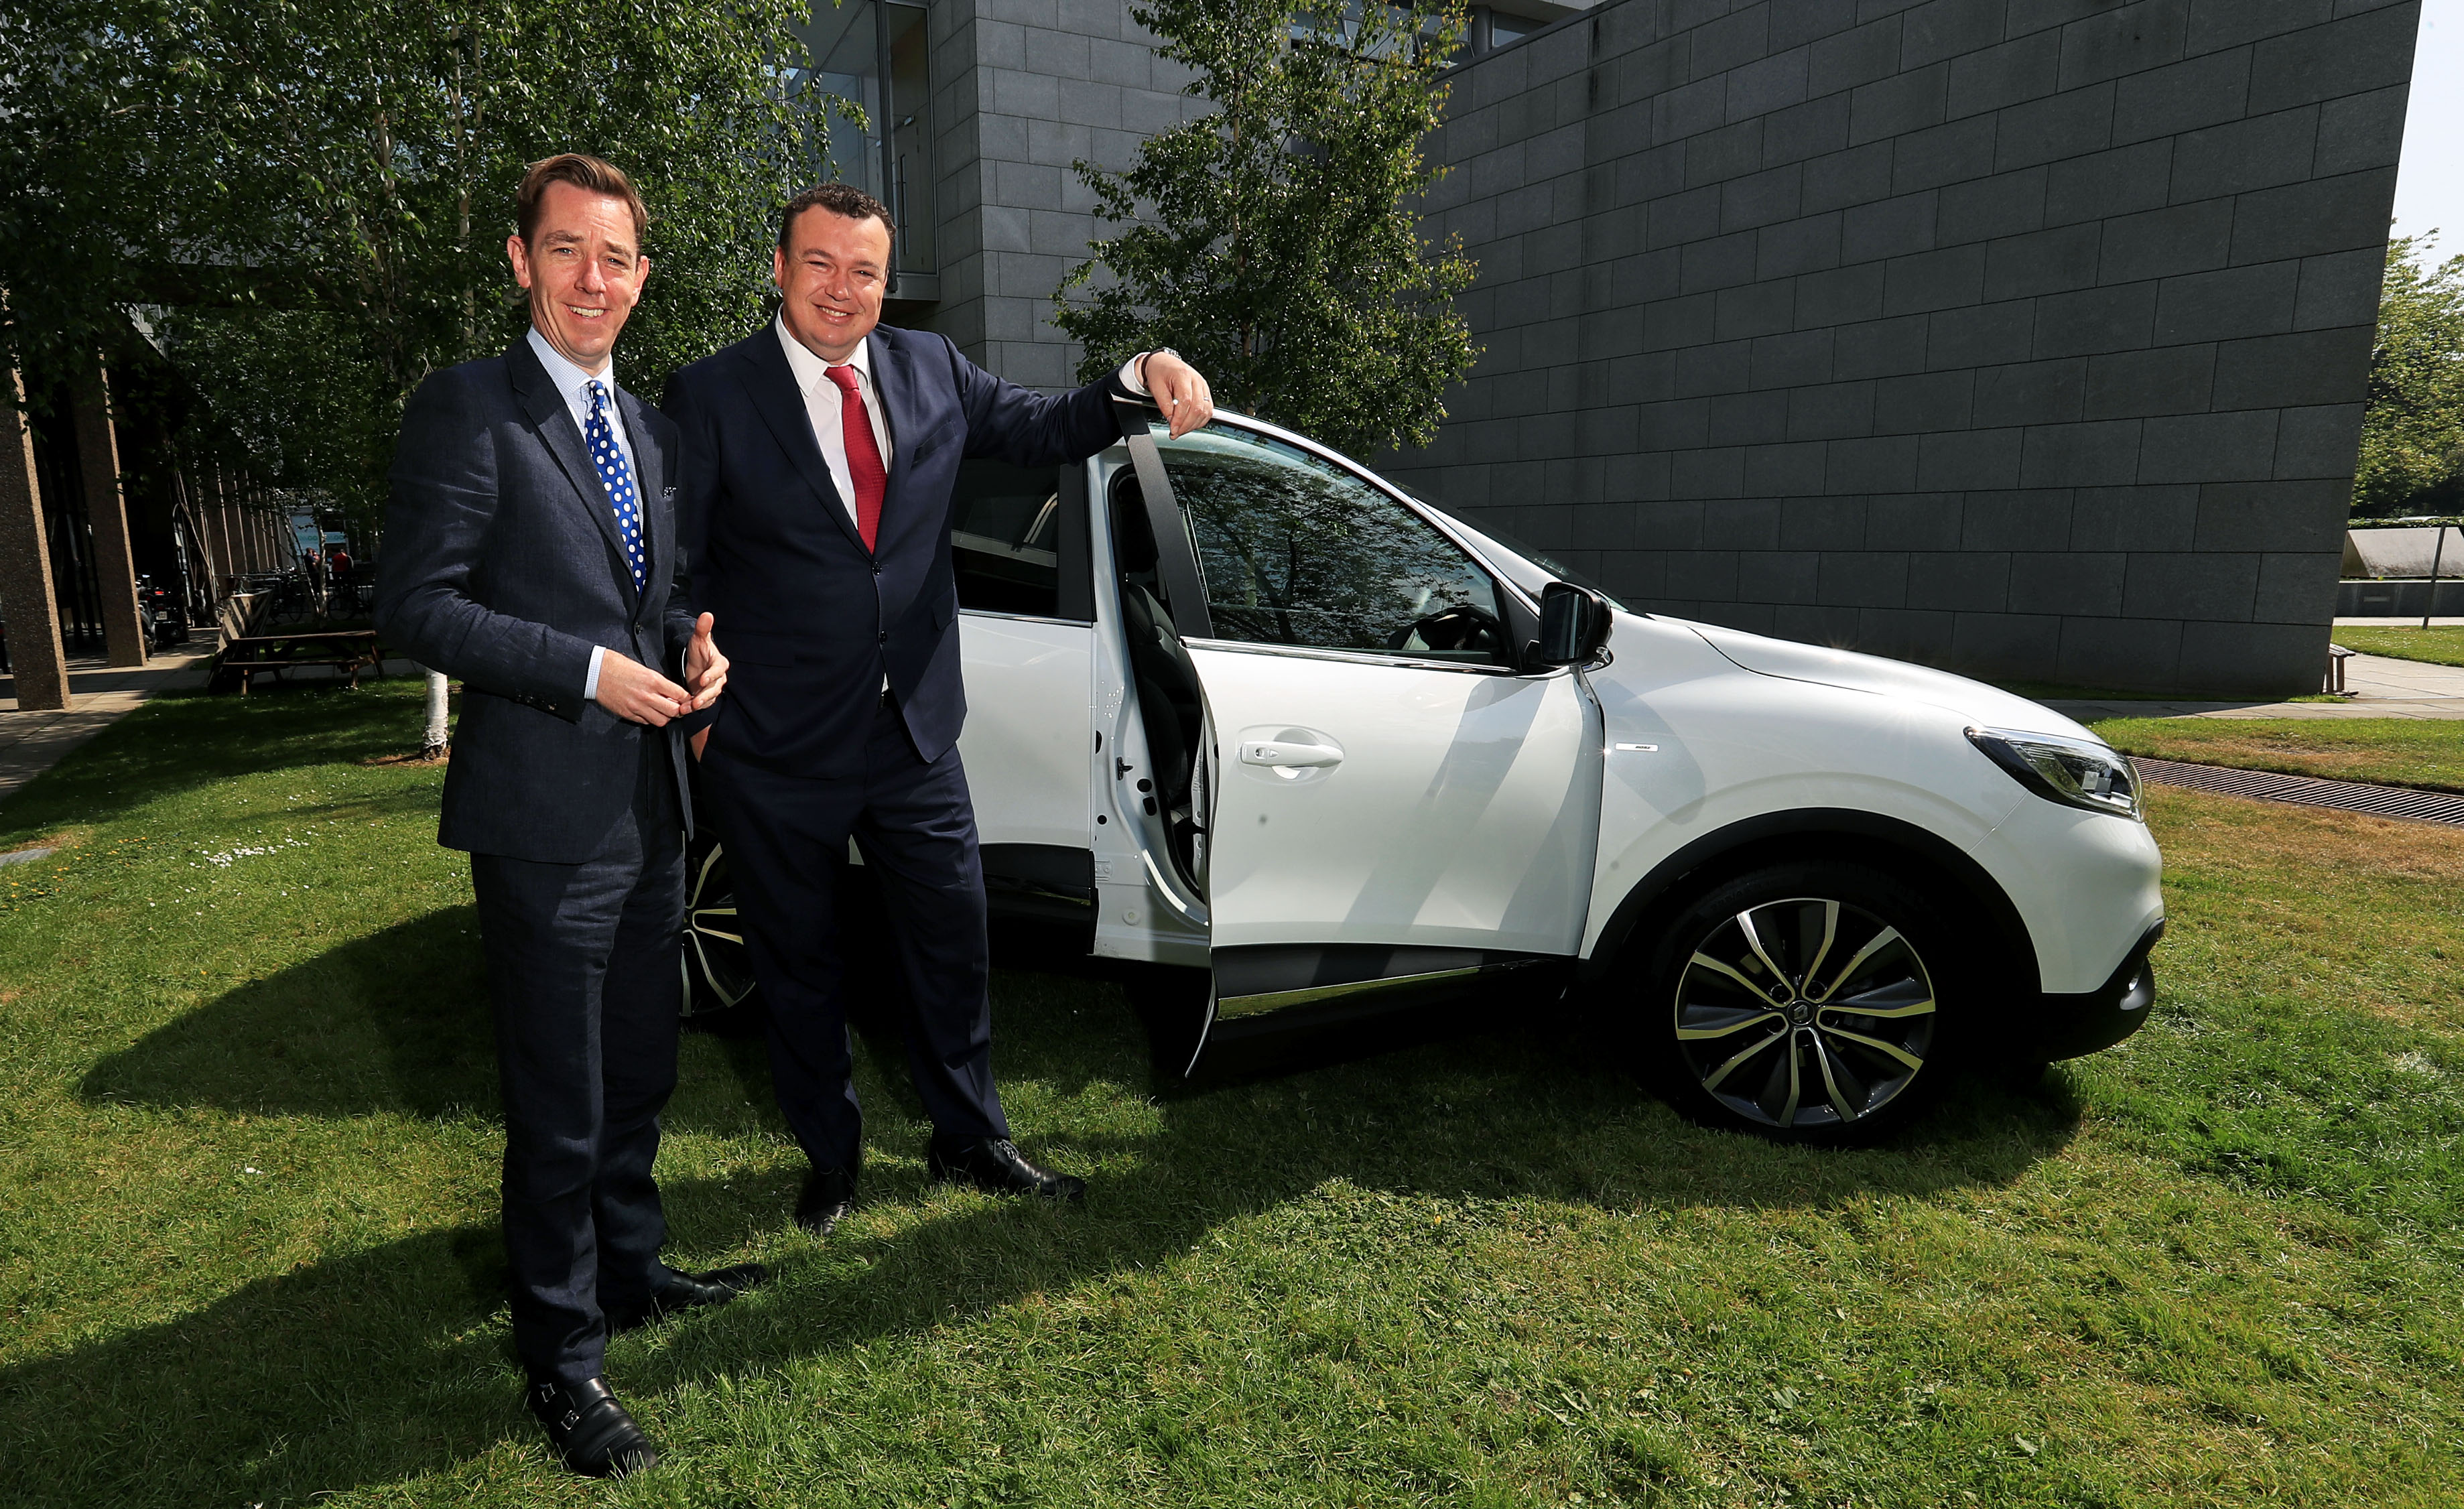 Renault Ireland renews sponsorship of The Late Late Show